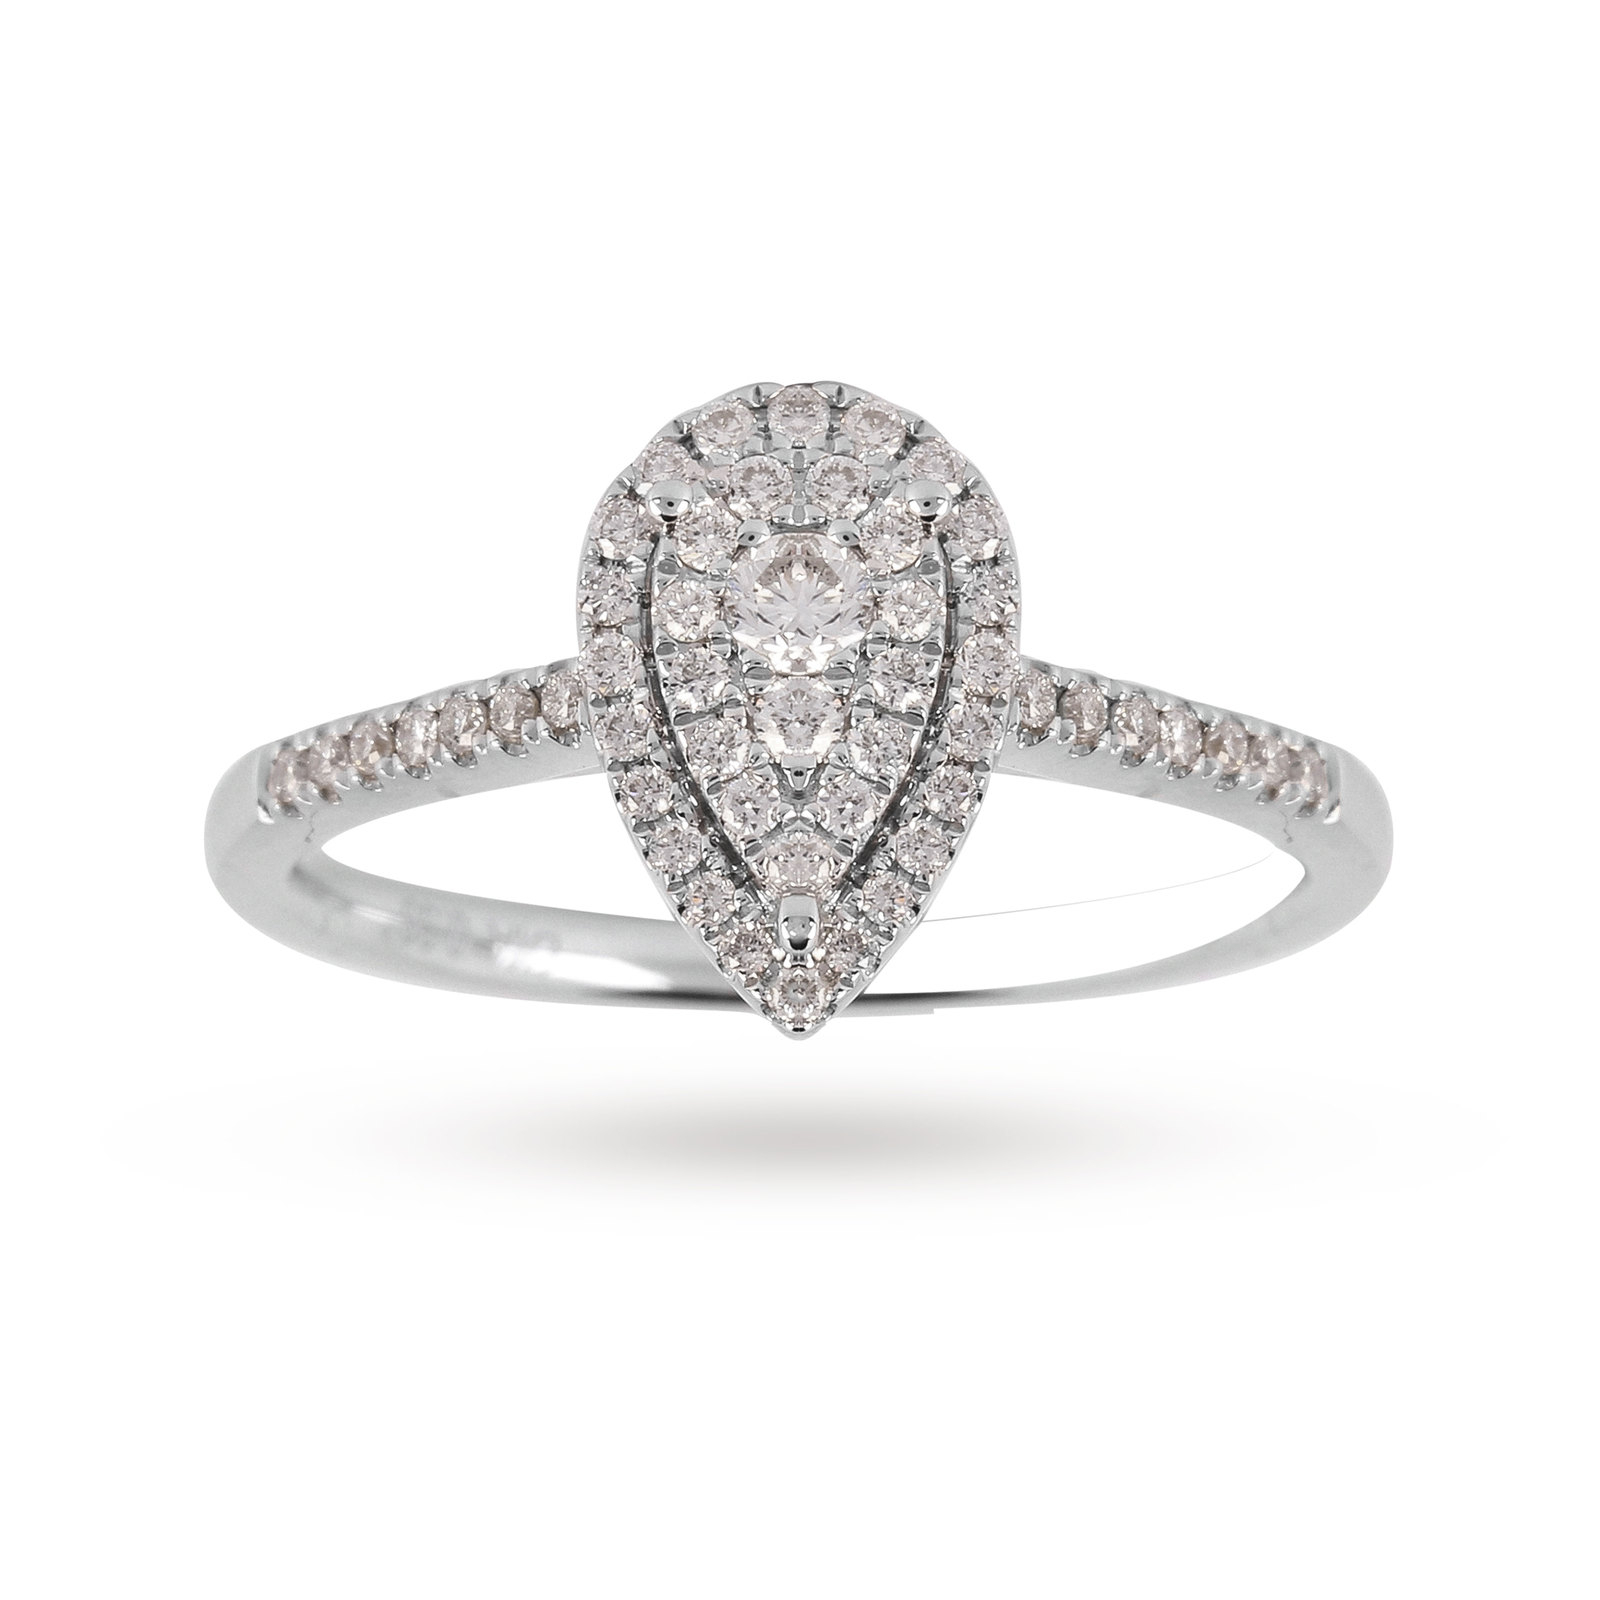 9Ct White Gold Diamond Multi Stone Halo Pear Shaped Ring Intended For Pear Shaped Engagement Rings (View 4 of 25)